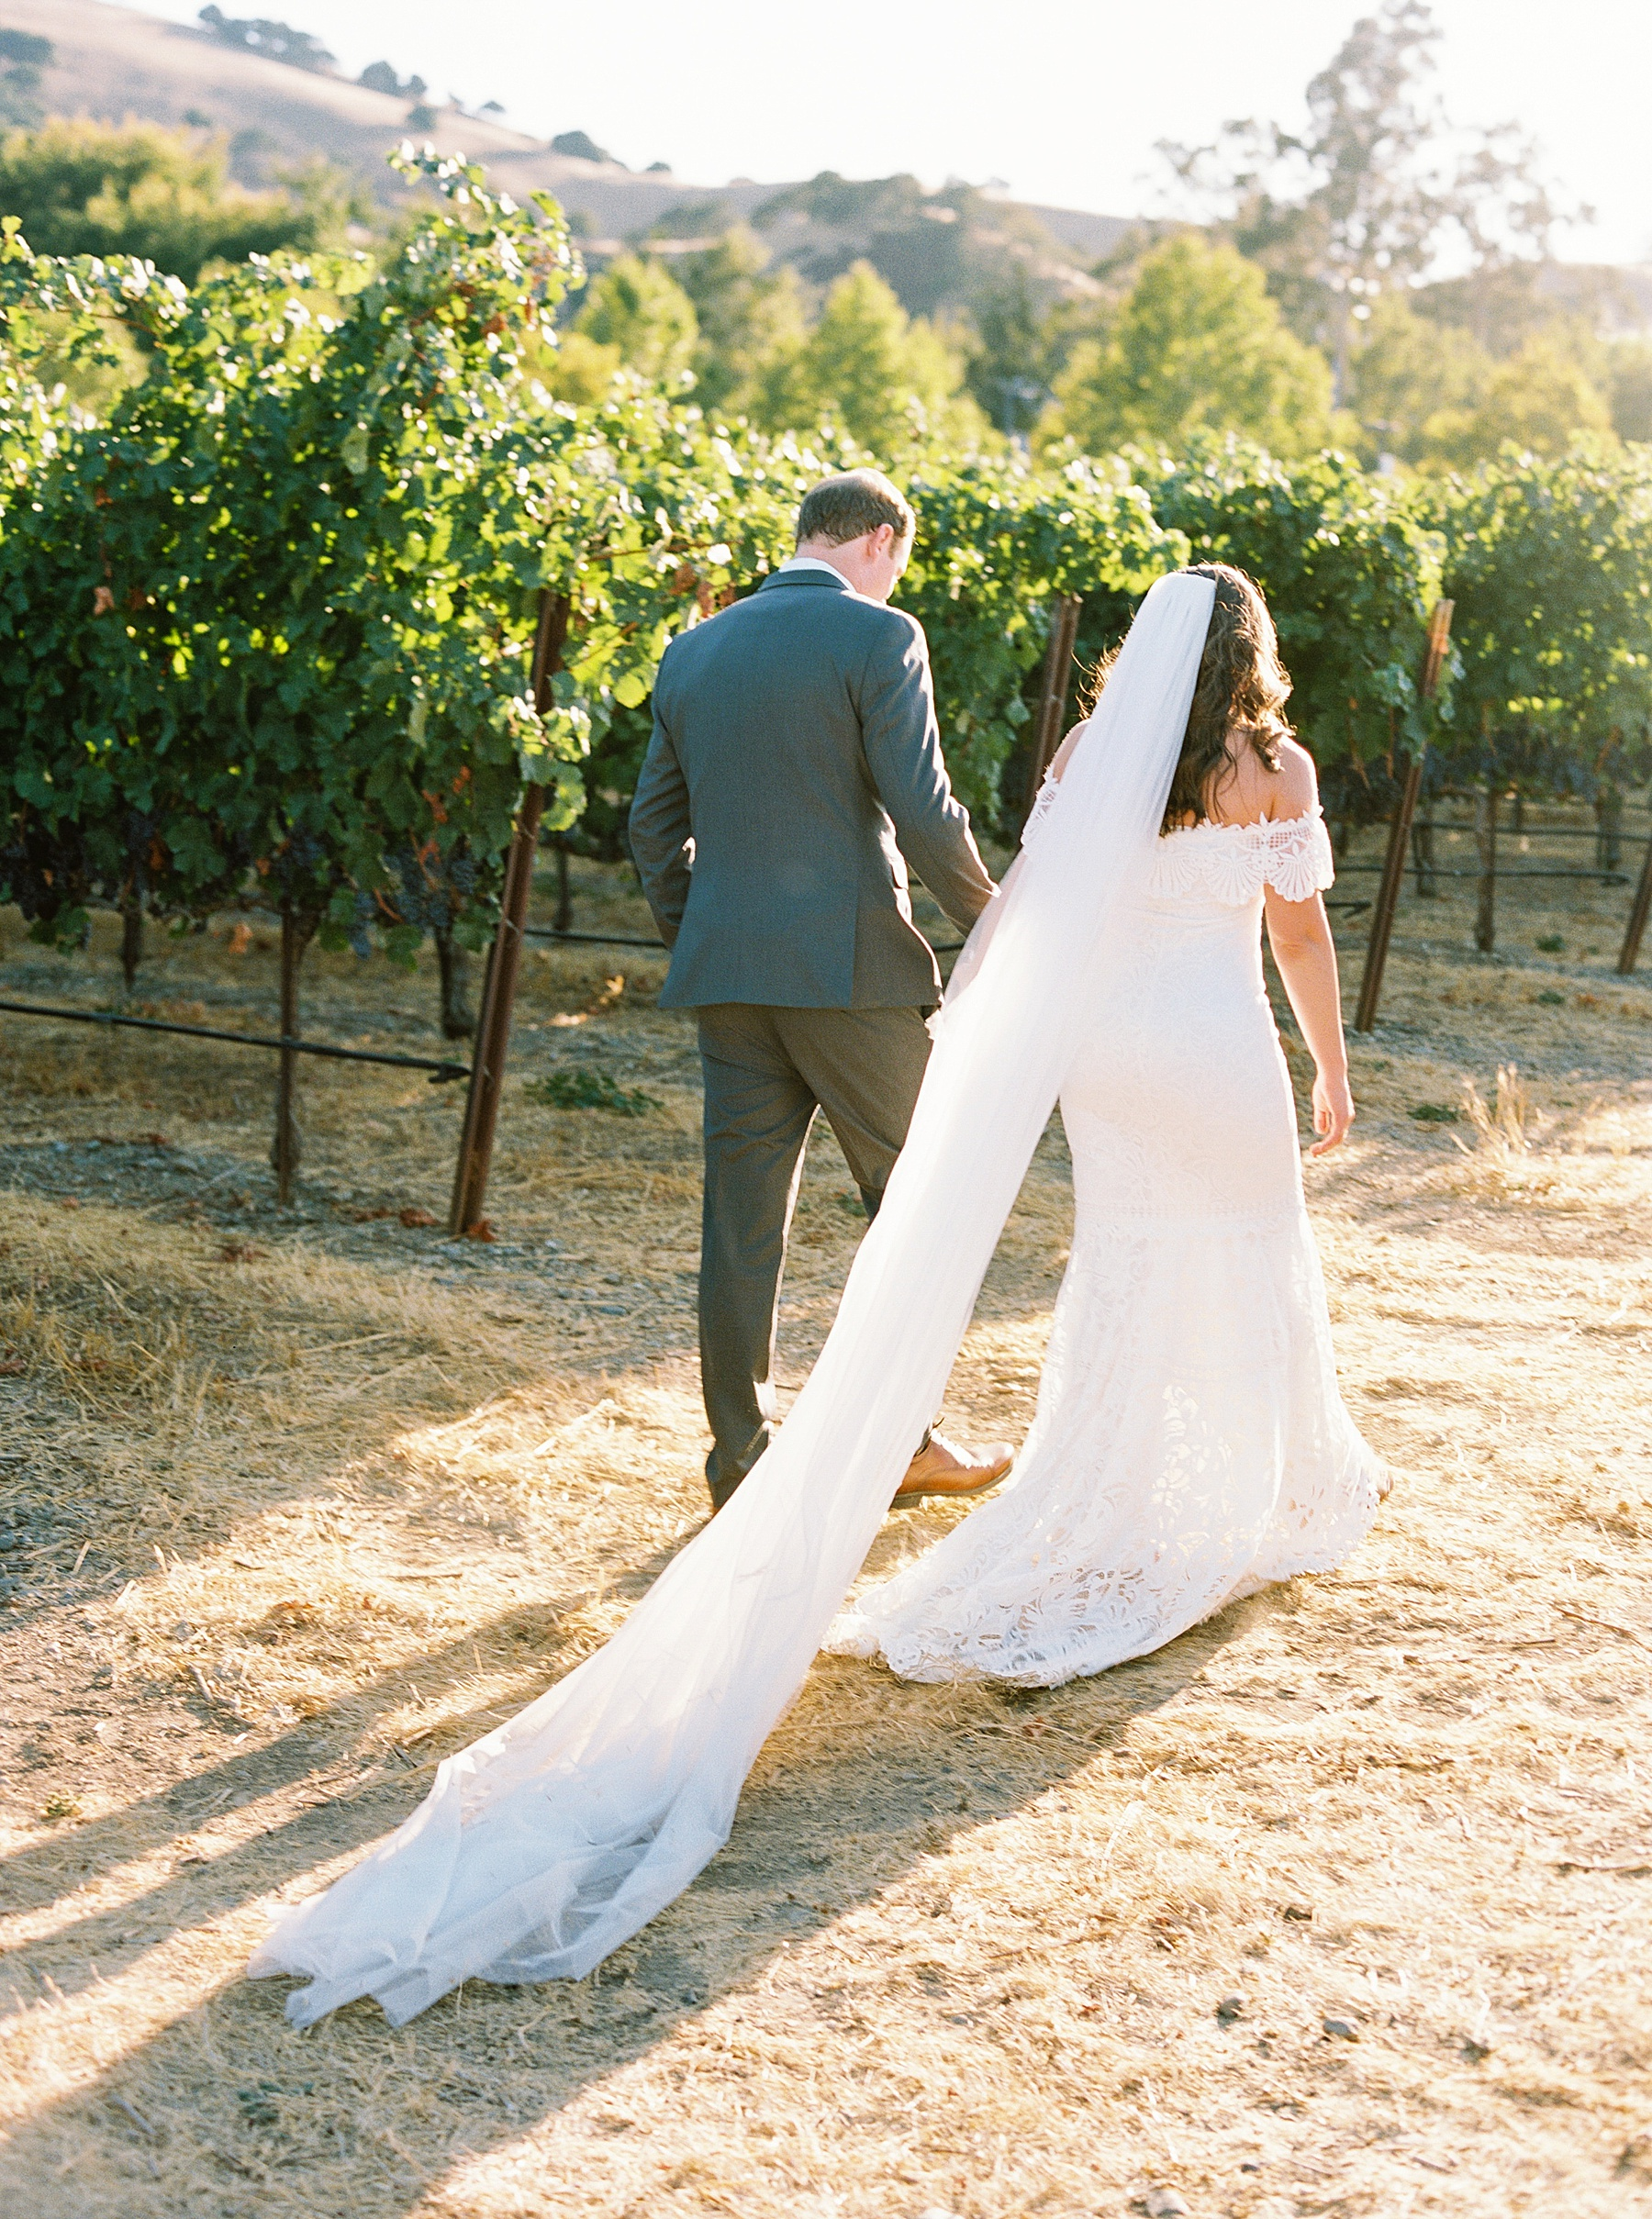 Wente Wedding with A Tropical Color Palette - Ashley & Mike - Featured on Inspired by This - Ashley Baumgartner_0010.jpg